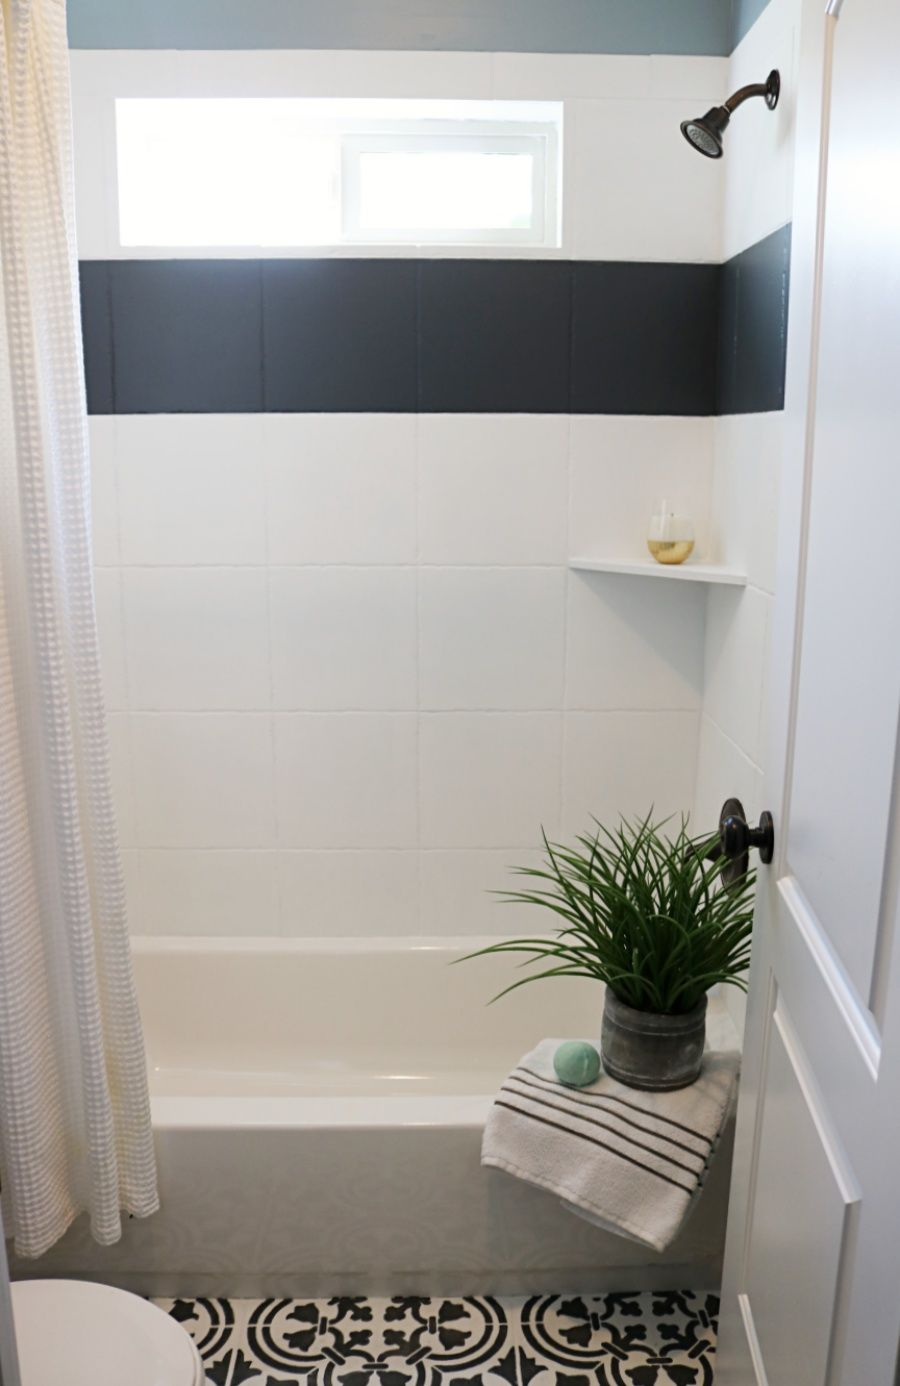 Painting Tiles And Other Great Tile Updates Shower Tile Designs Painting Bathroom Tiles Painting Shower